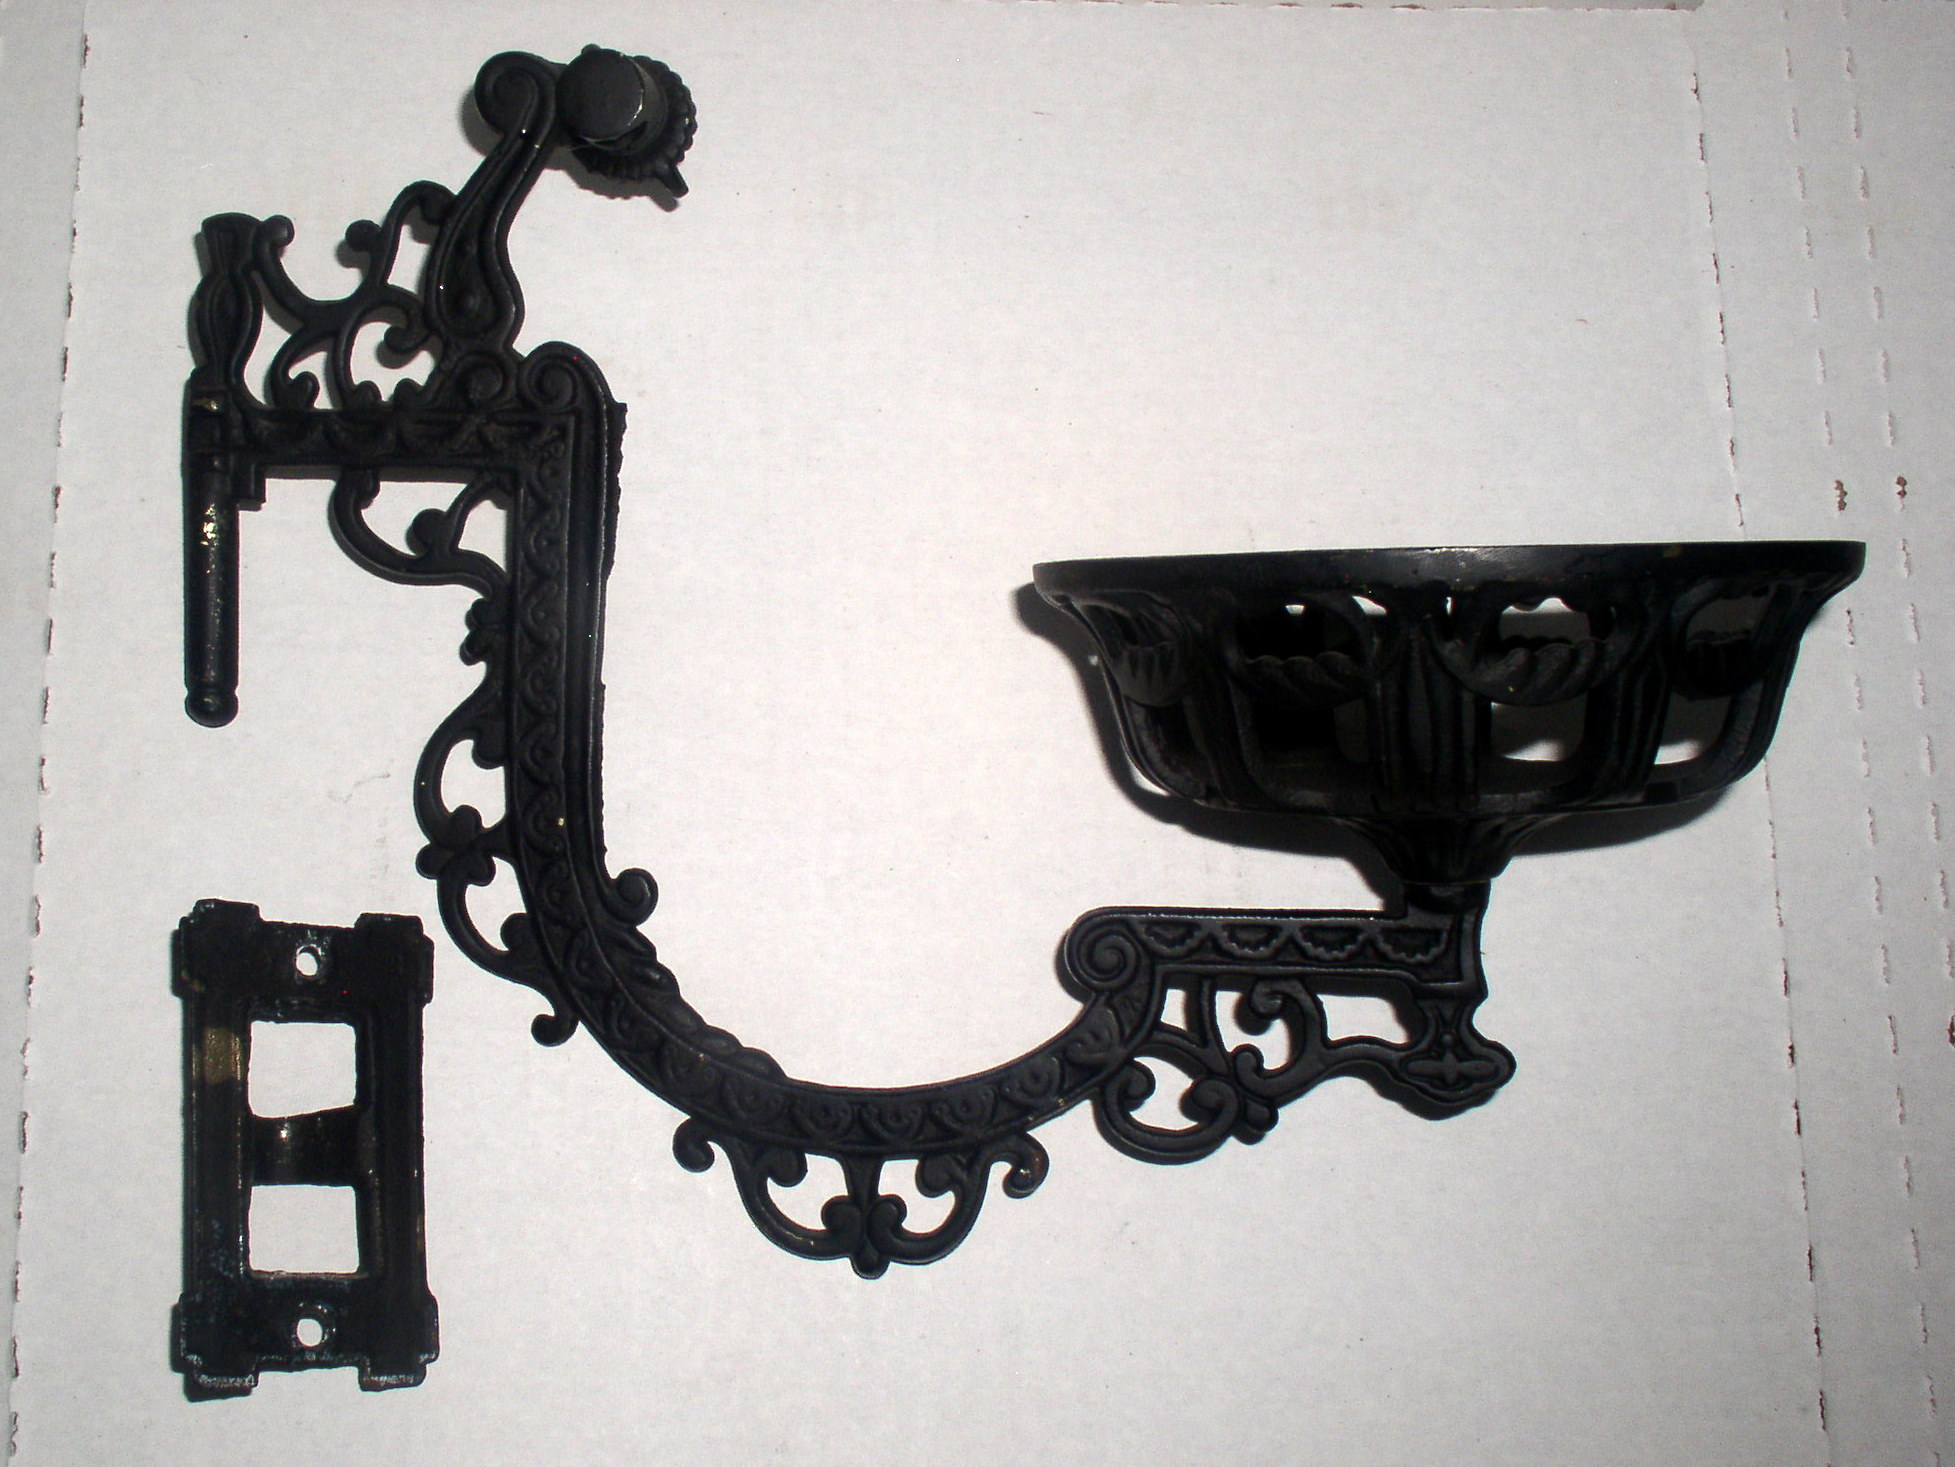 Wall Mount Lamp Bracket : Antique Cast Iron Wall Mount Kerosene Oil Lamp Bracket Holder, Complete Thingery Previews ...